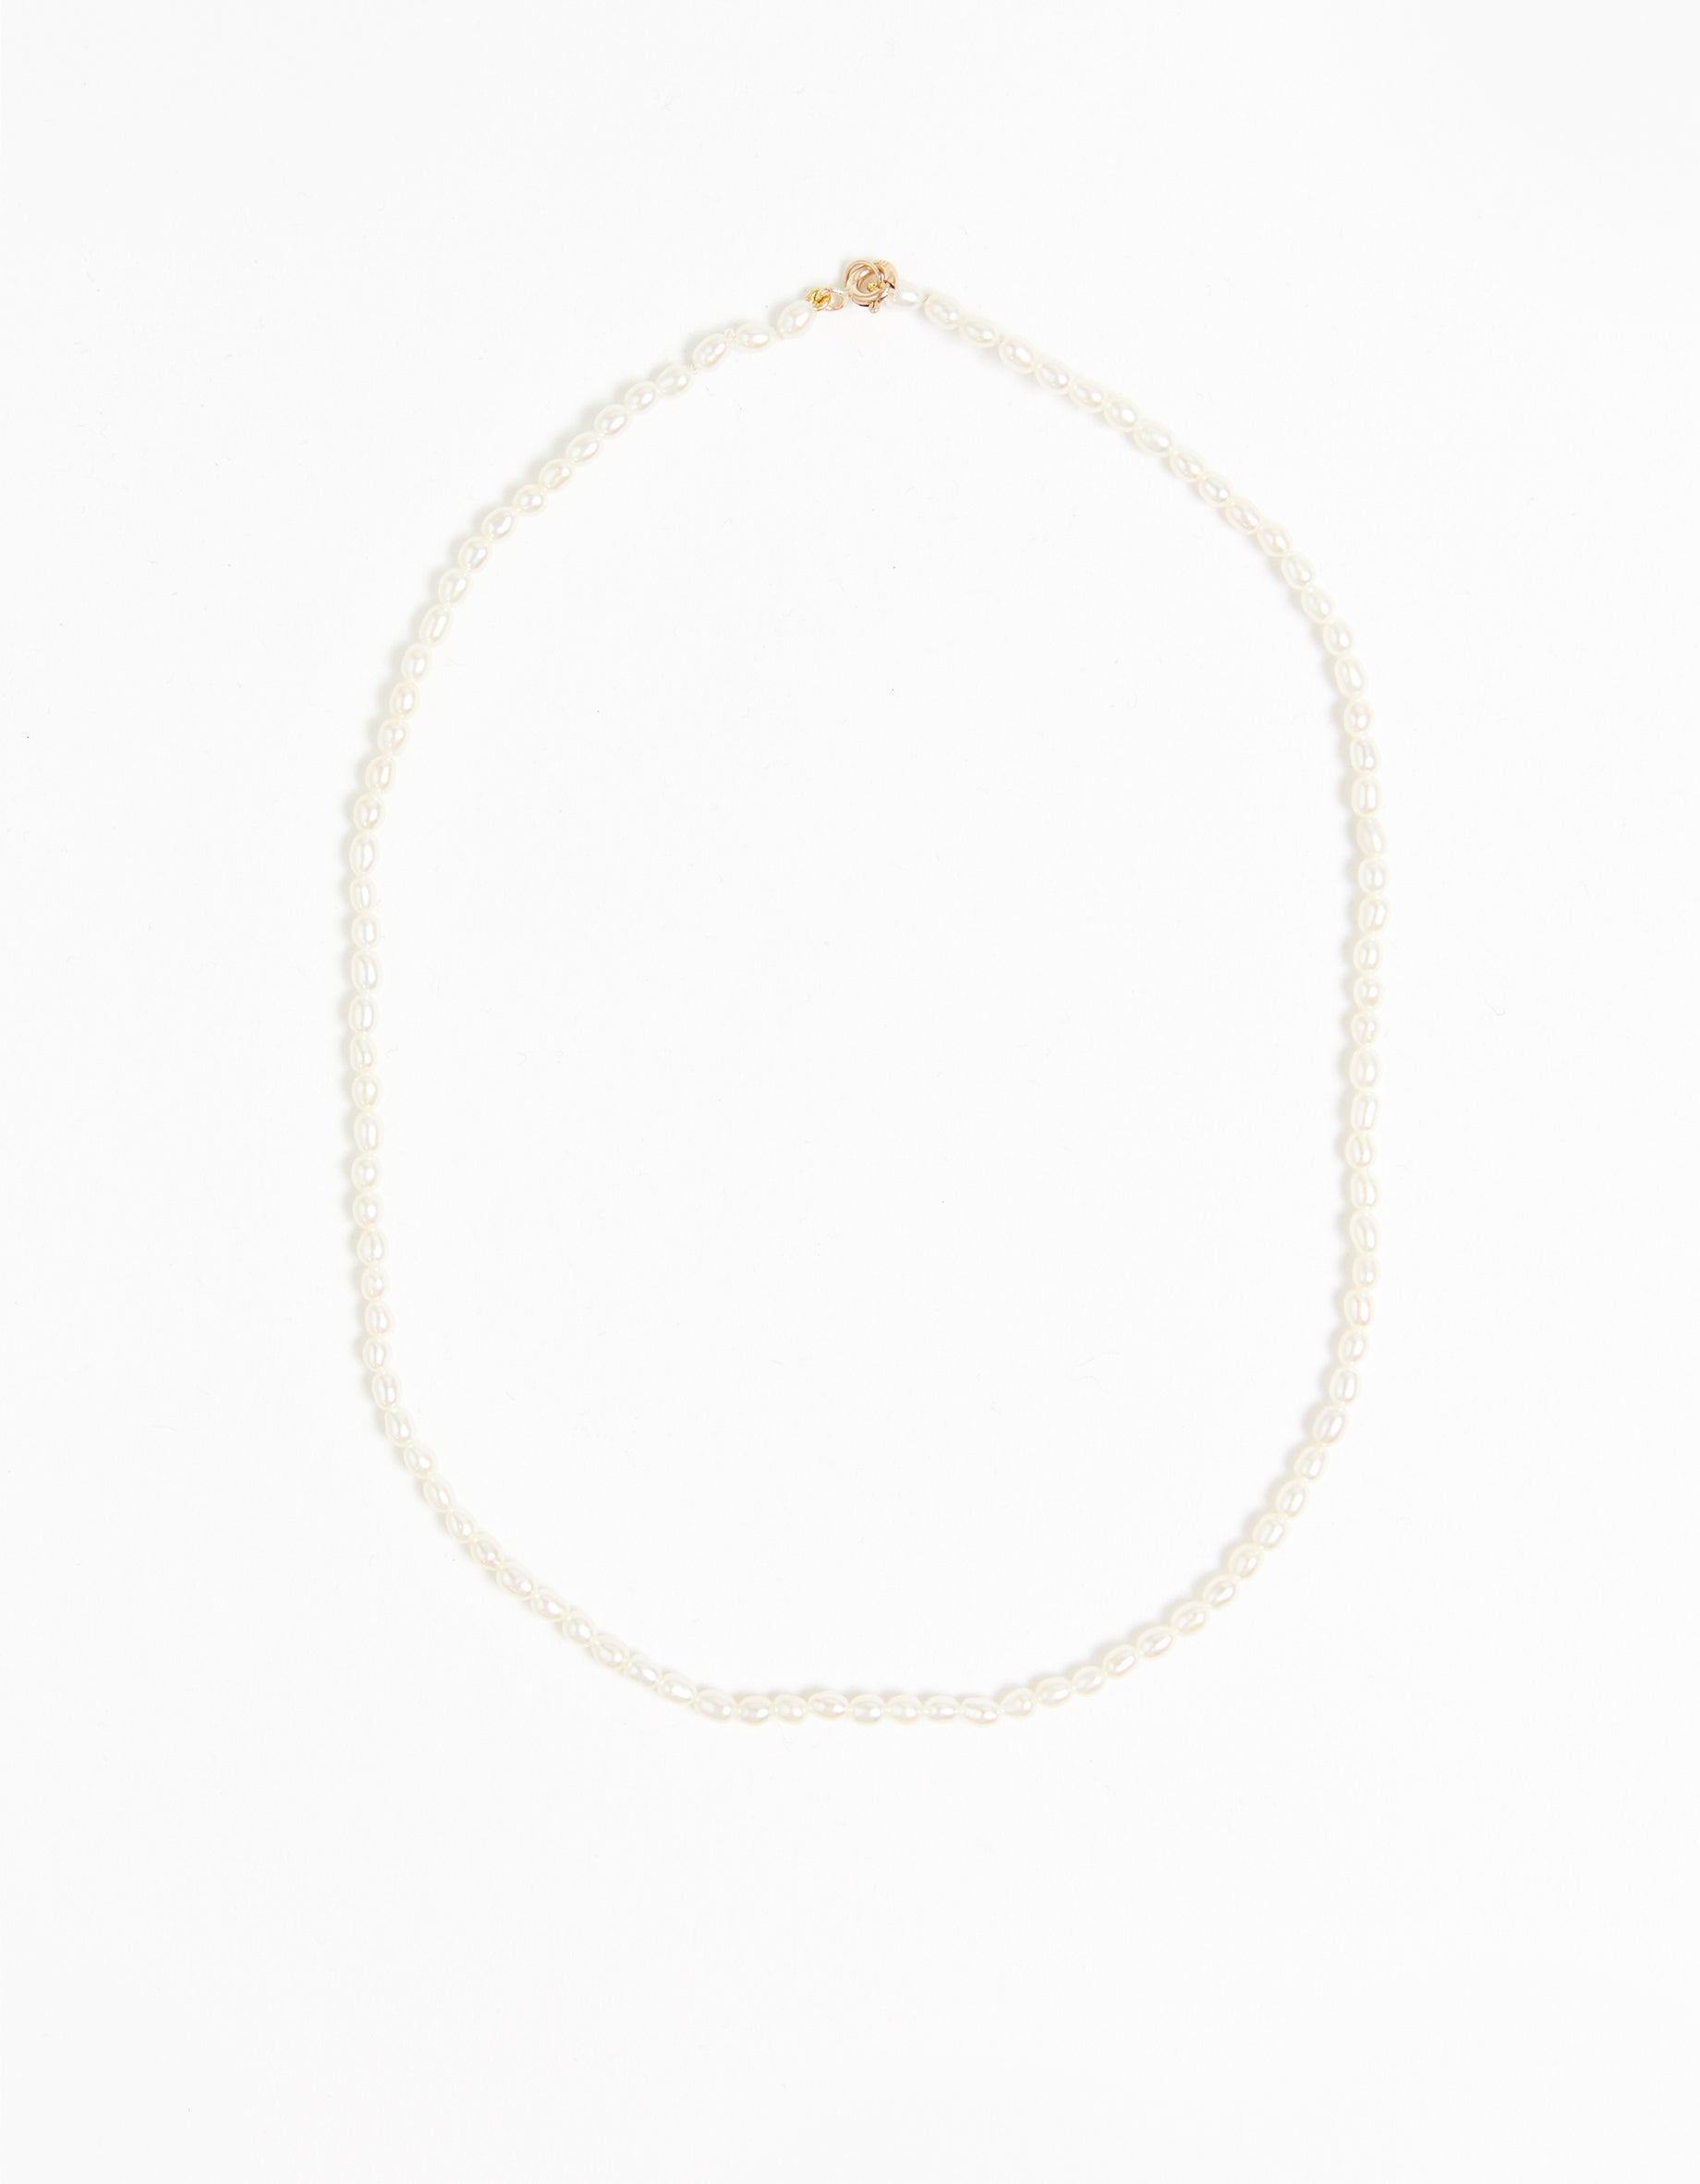 Dream Pearl Necklace - 9K Yellow Gold